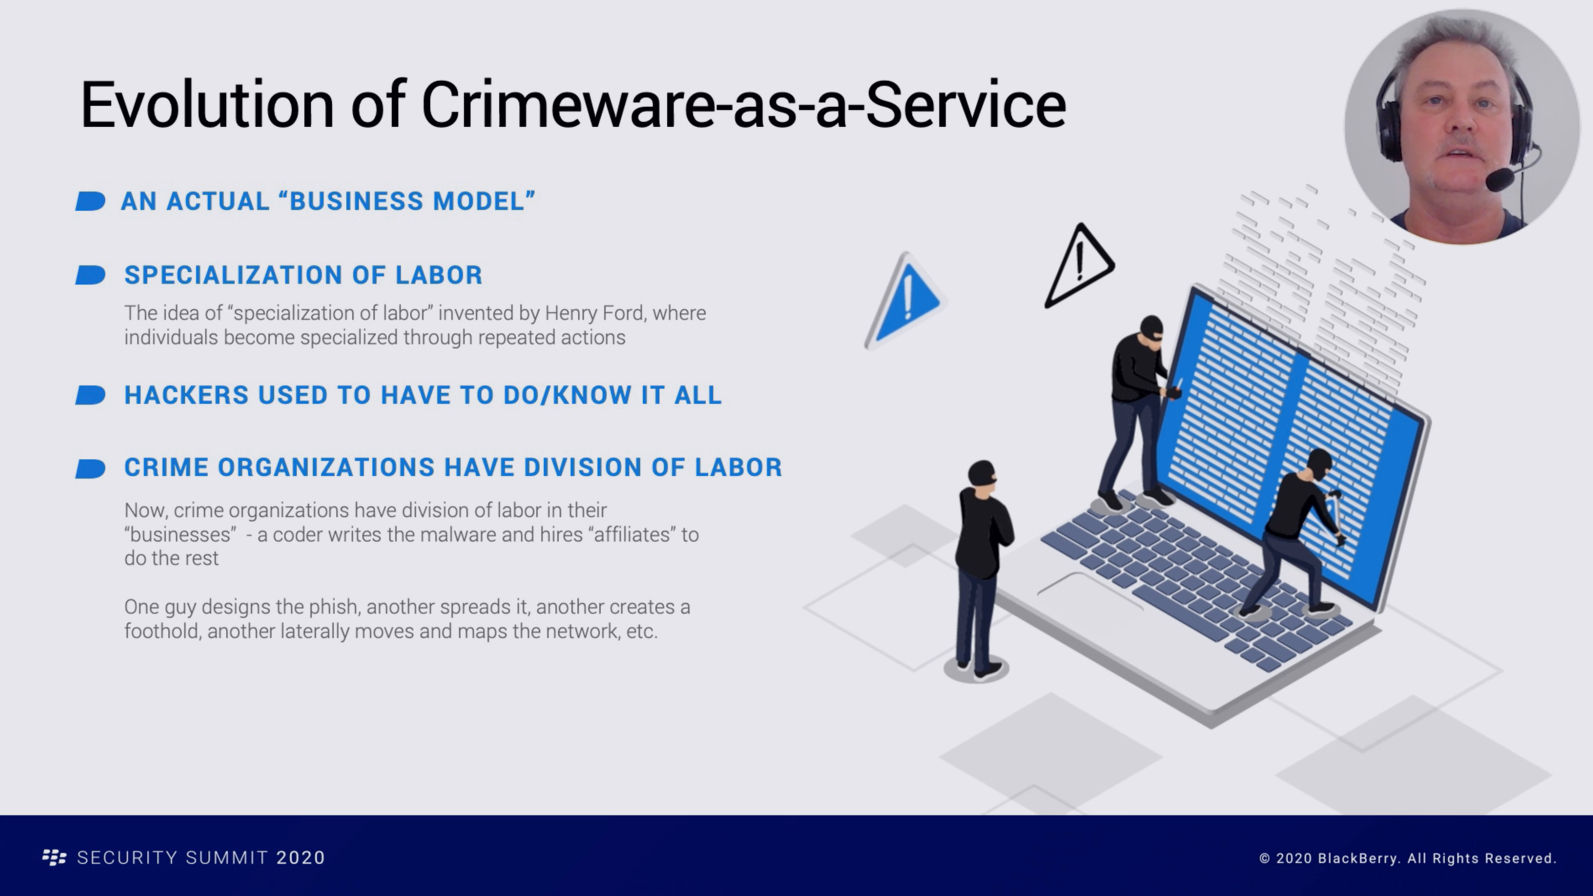 Crimeware as a Service Increases